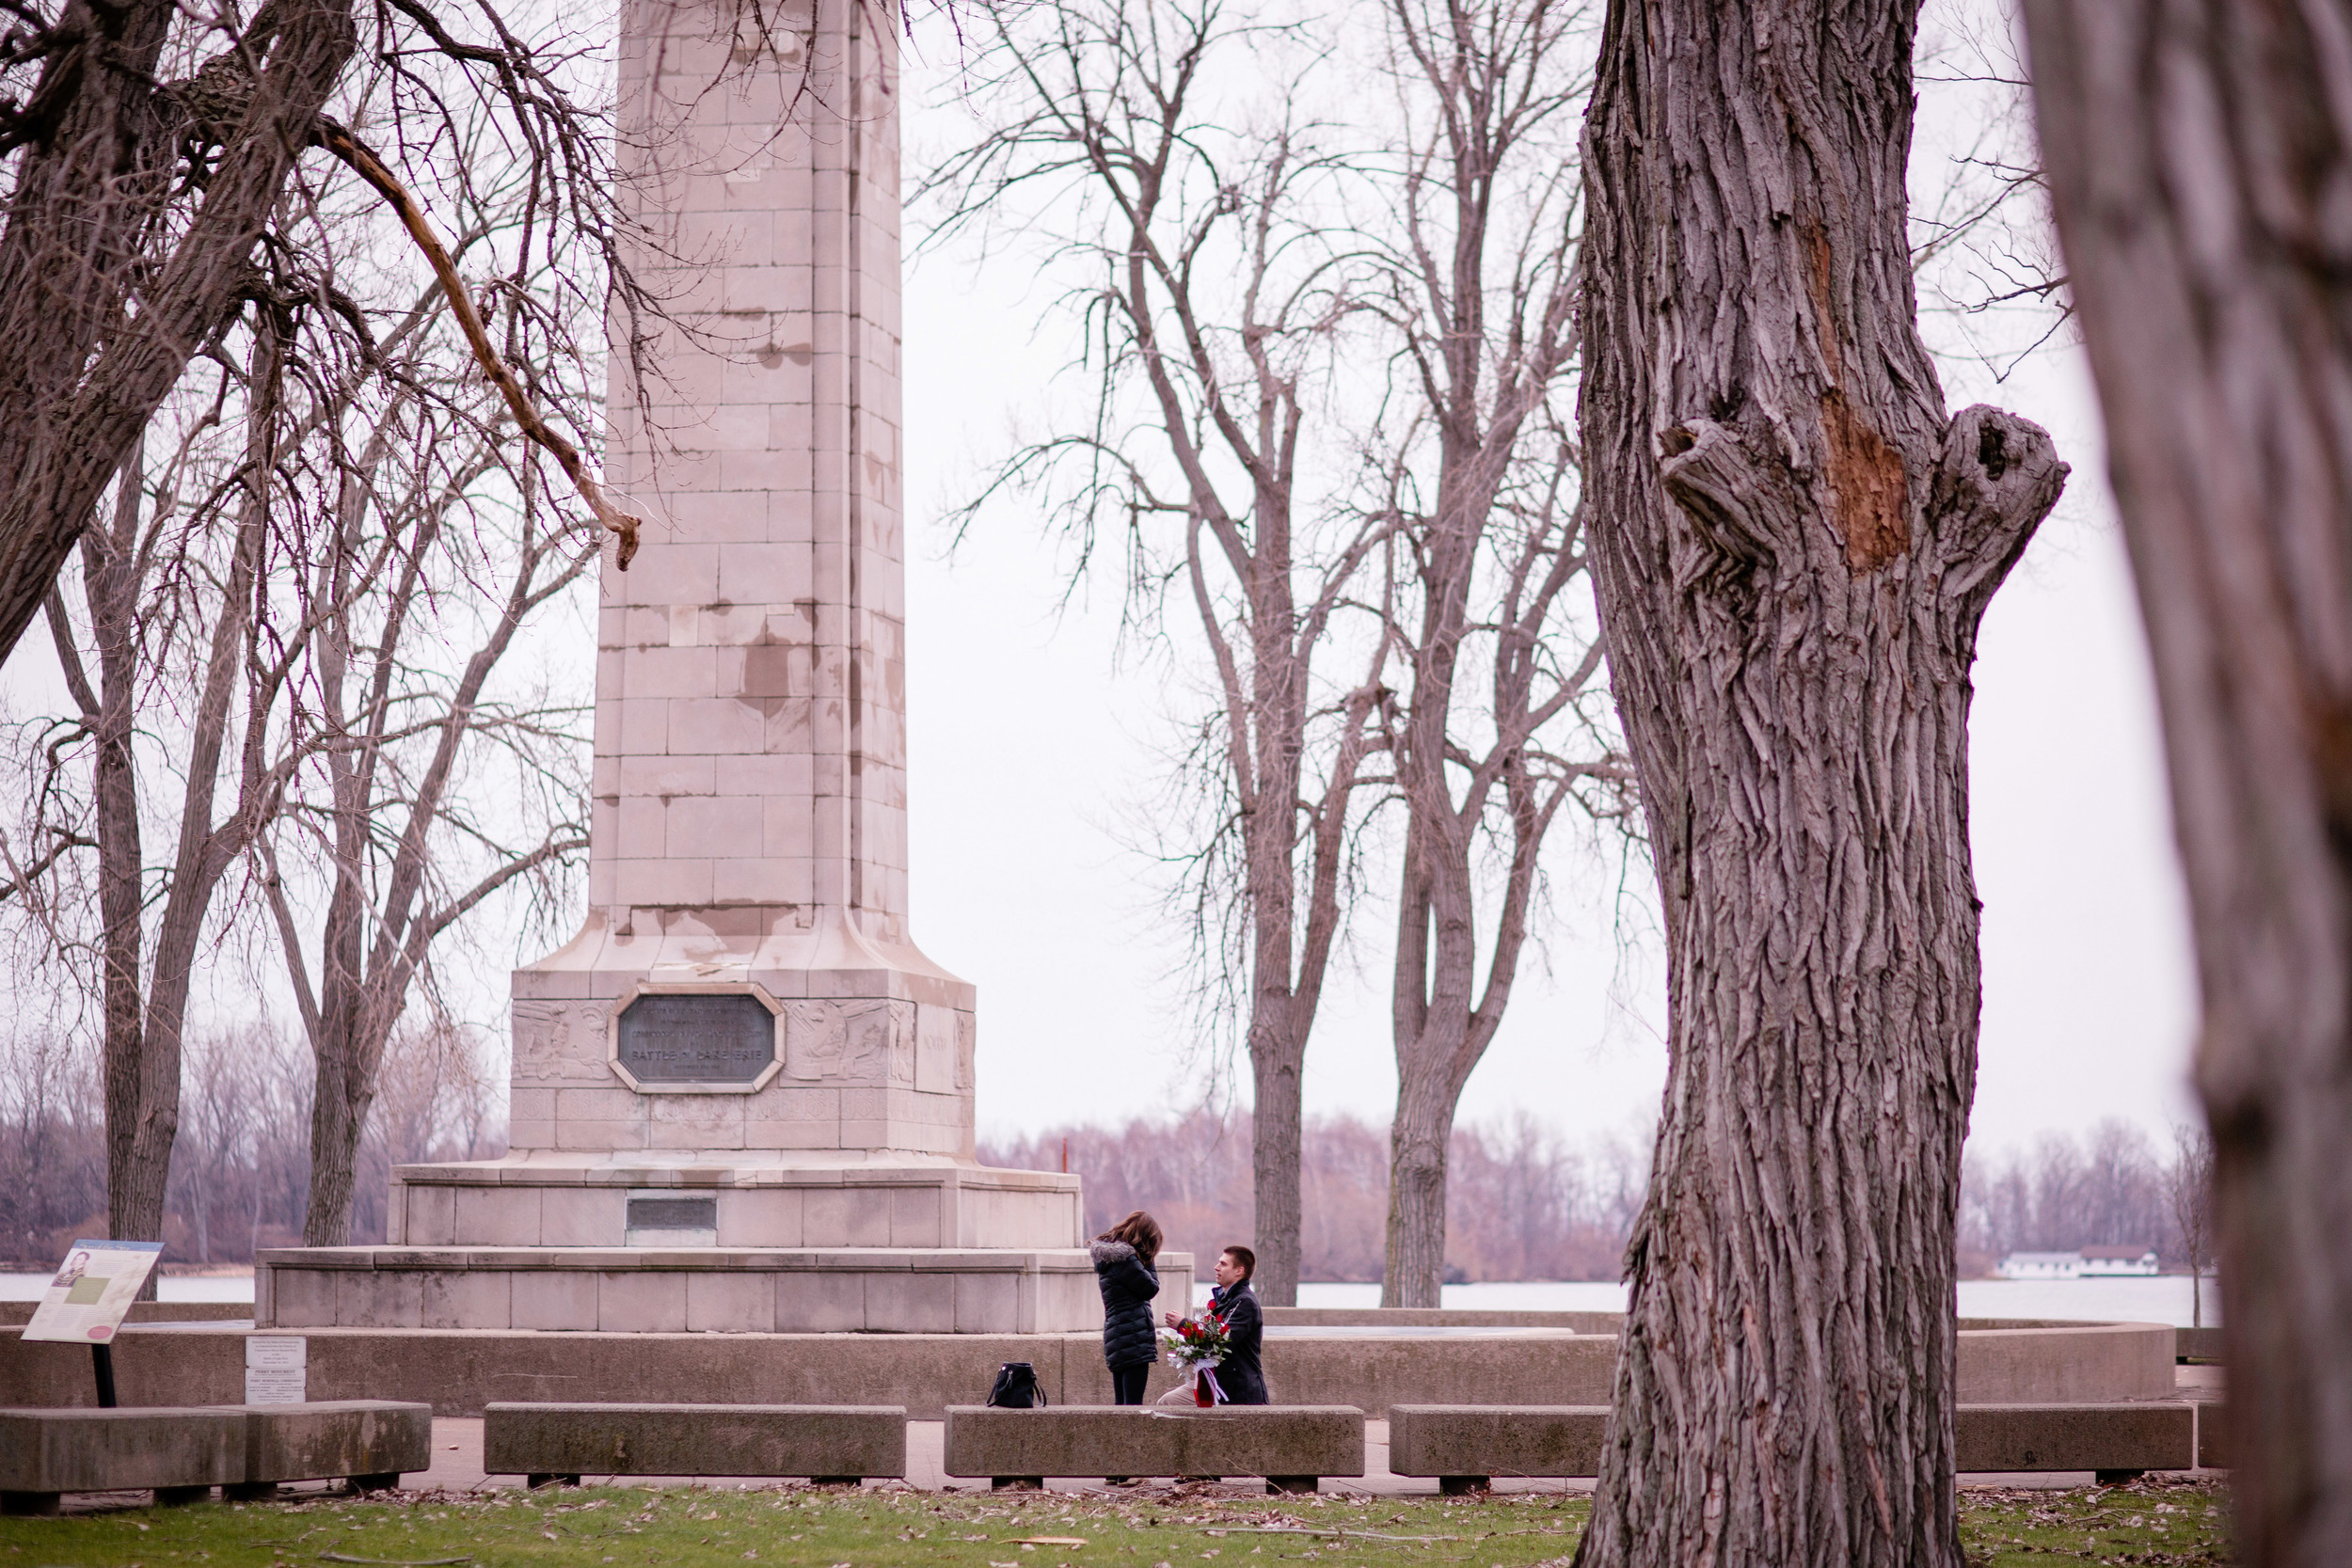 Kevin-Meredith-Proposal-Stefan-Ludwig-Photography-Buffalo-NY-Erie-PA-17-x.jpg